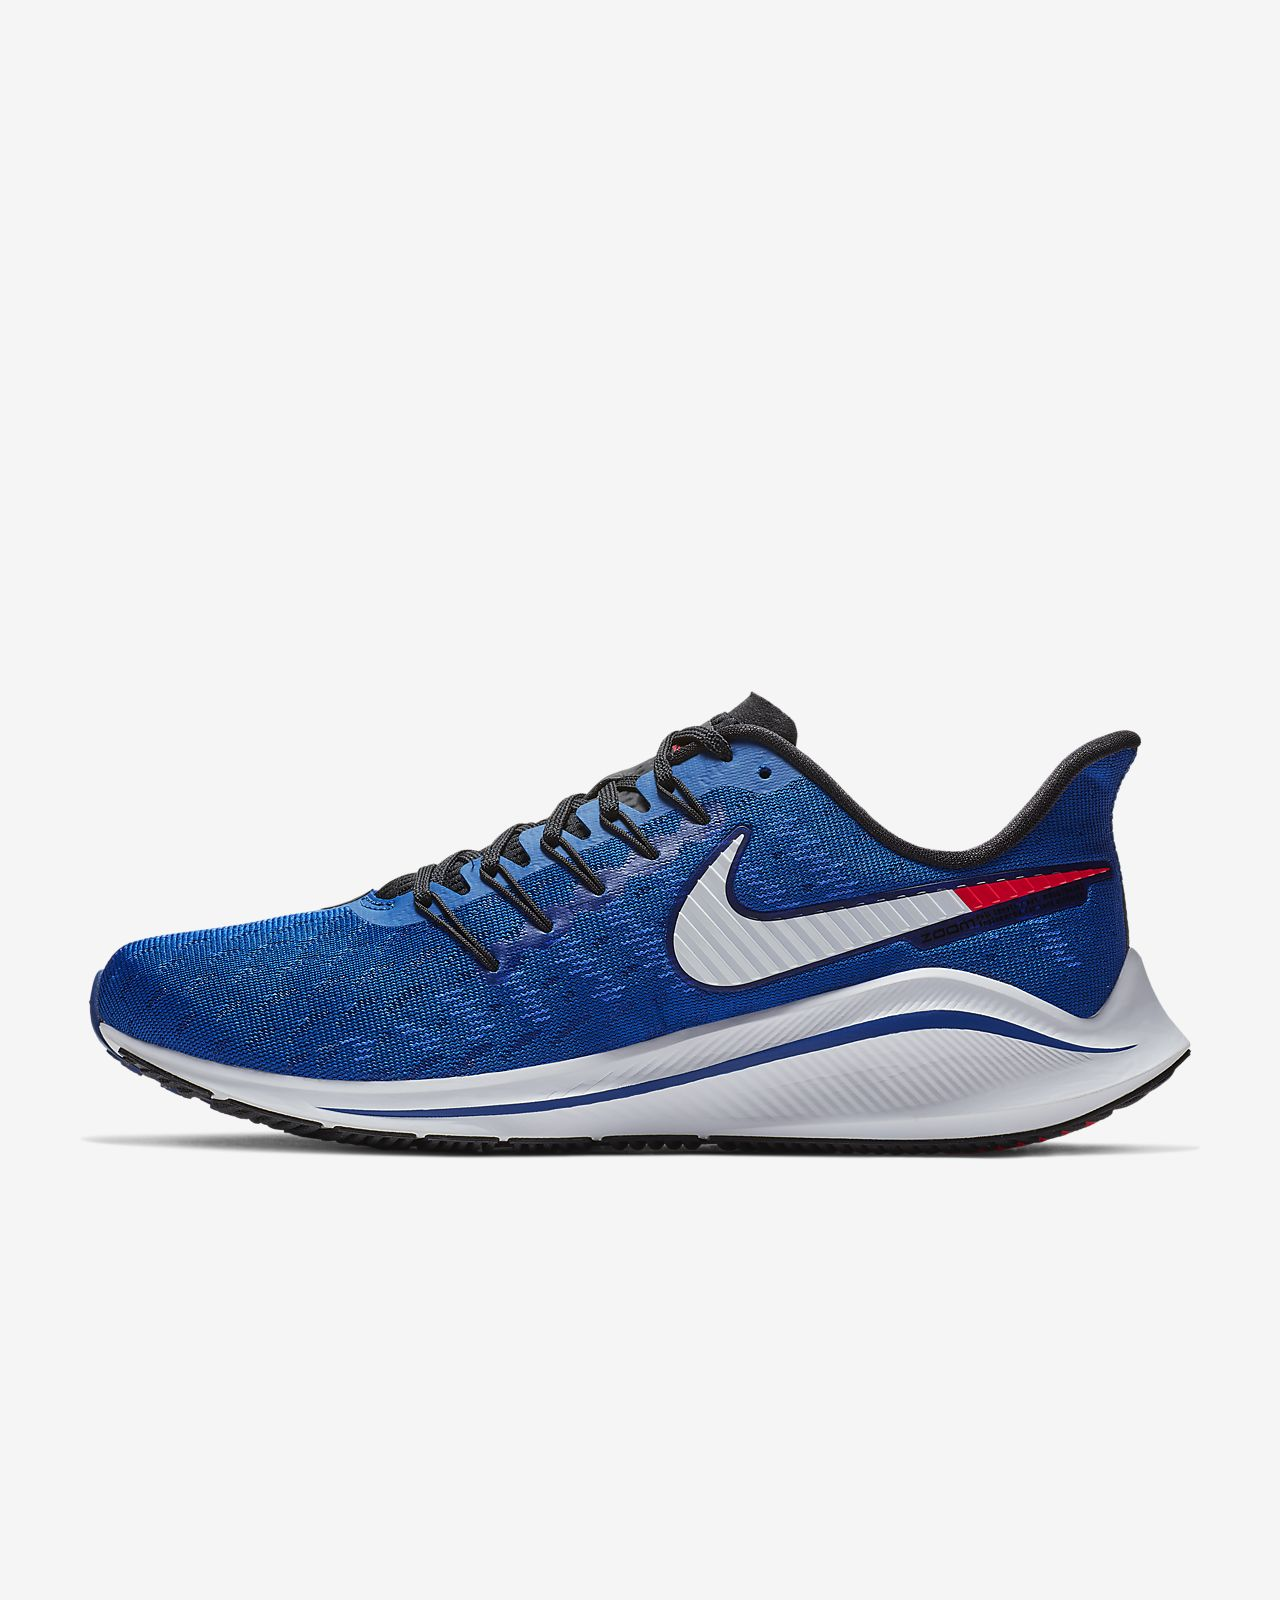 Nike Air Zoom Vomero 14 Men s Running Shoe. Nike.com ZA ccfcedb4c